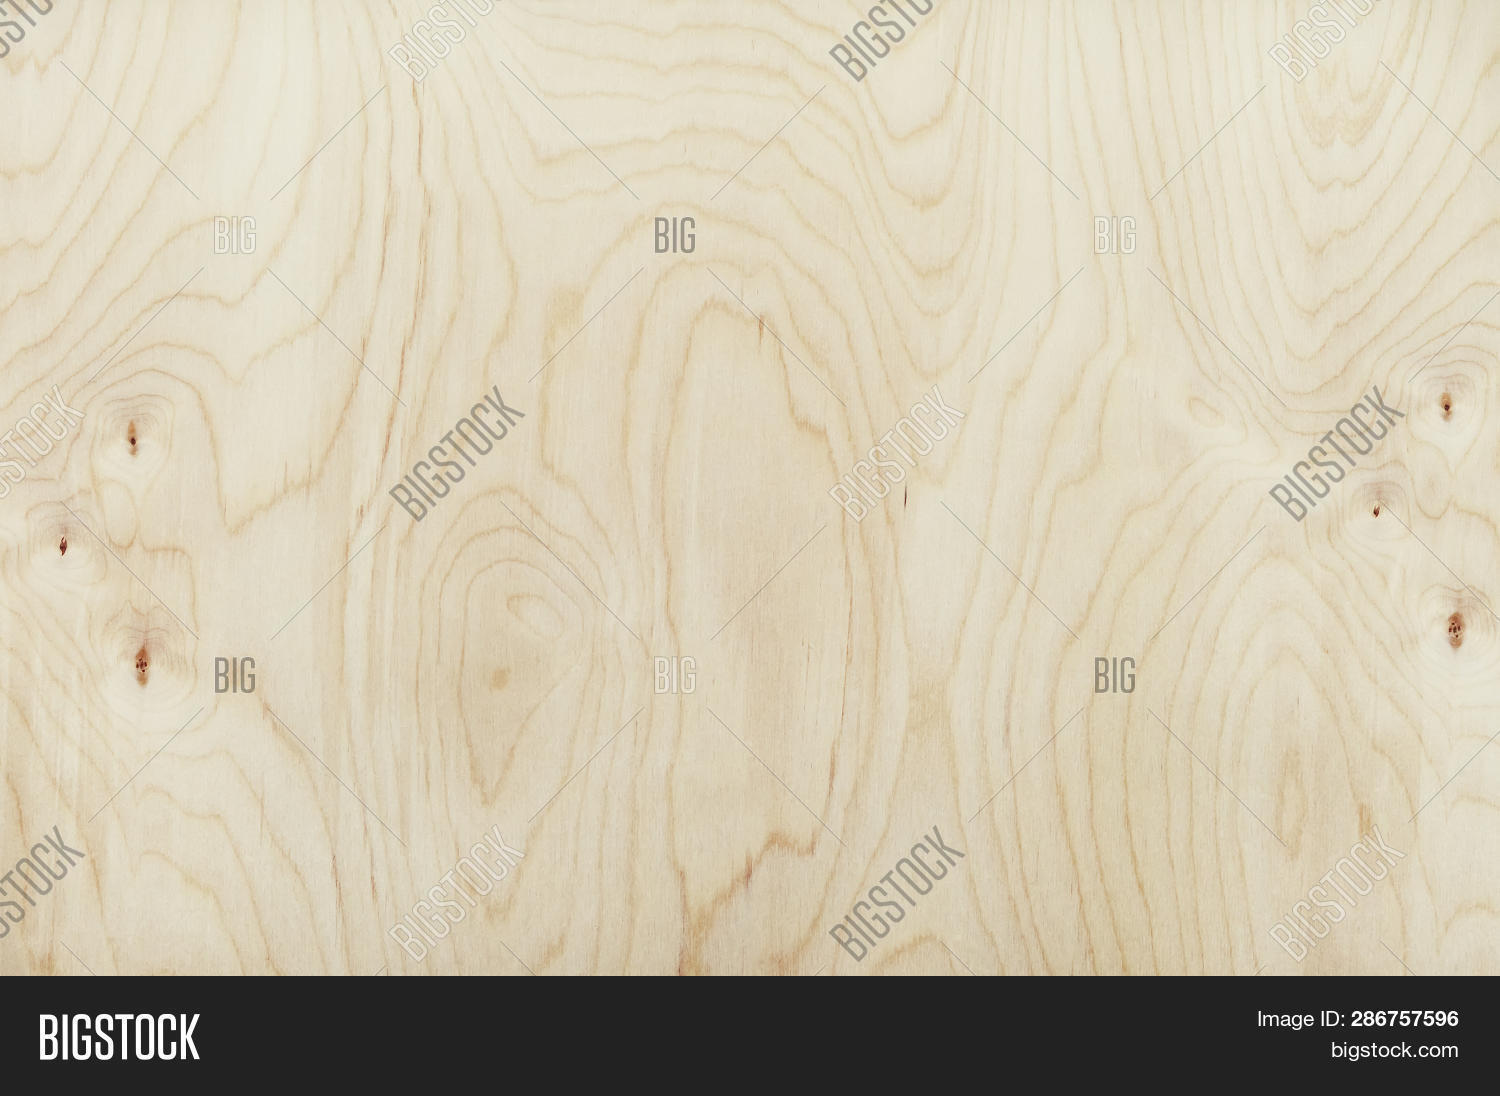 Plywood Texture Image Photo Free Trial Bigstock